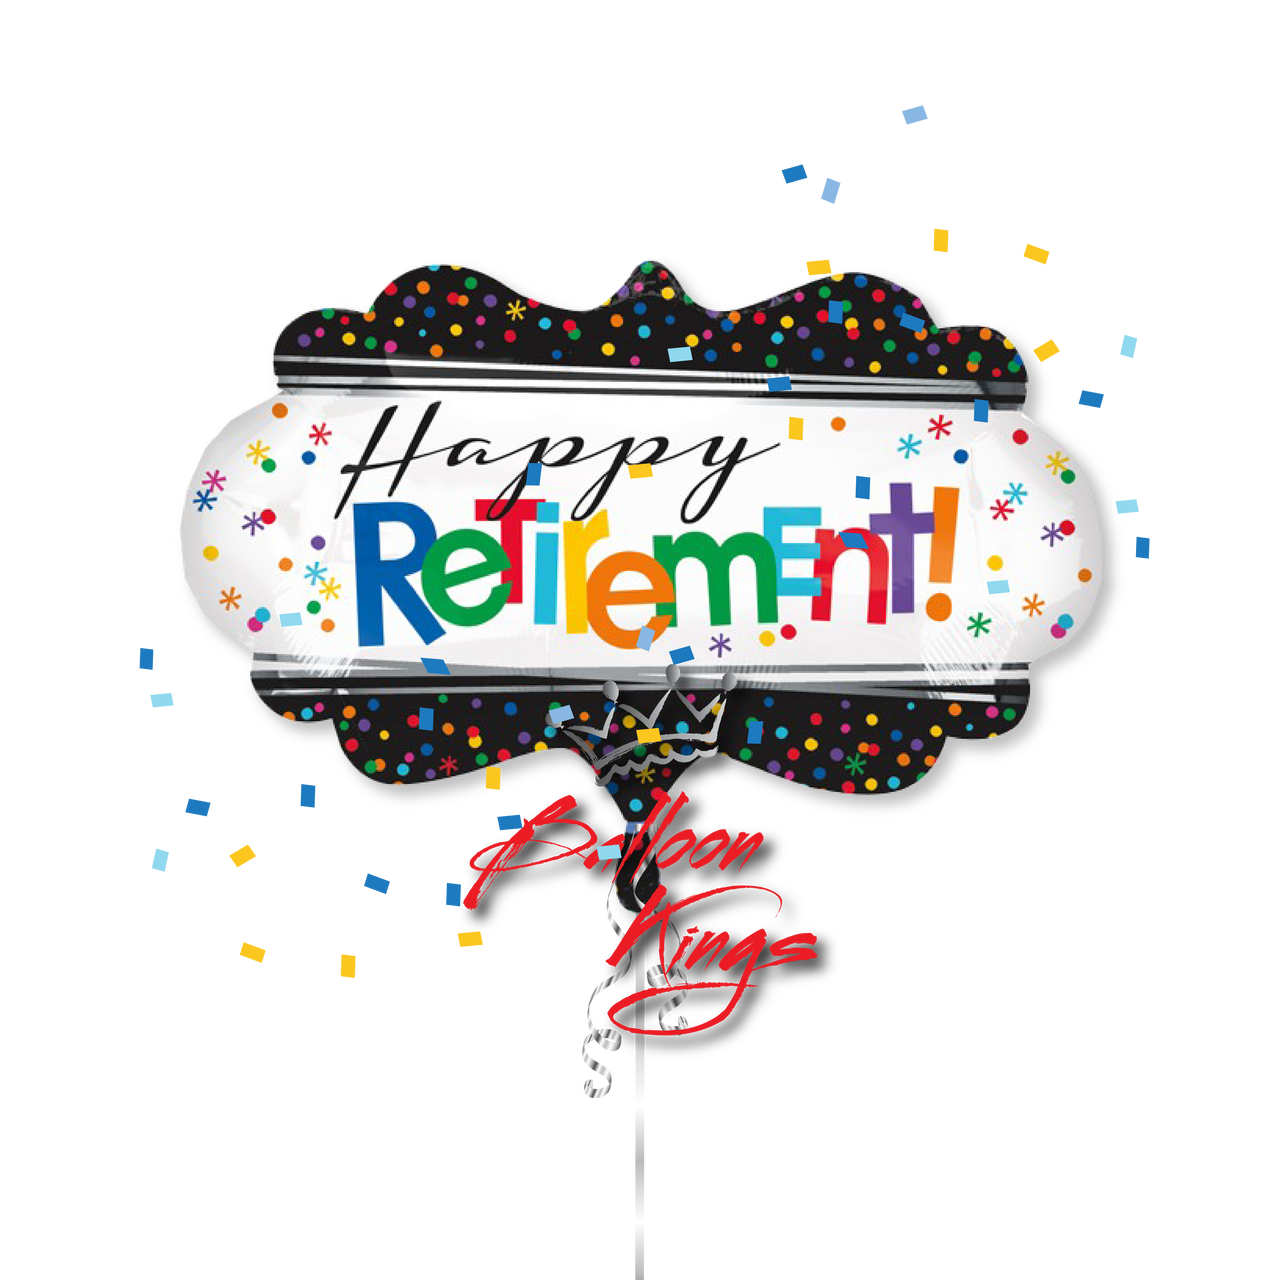 Balloons clipart retirement. Happy marquee balloon kings